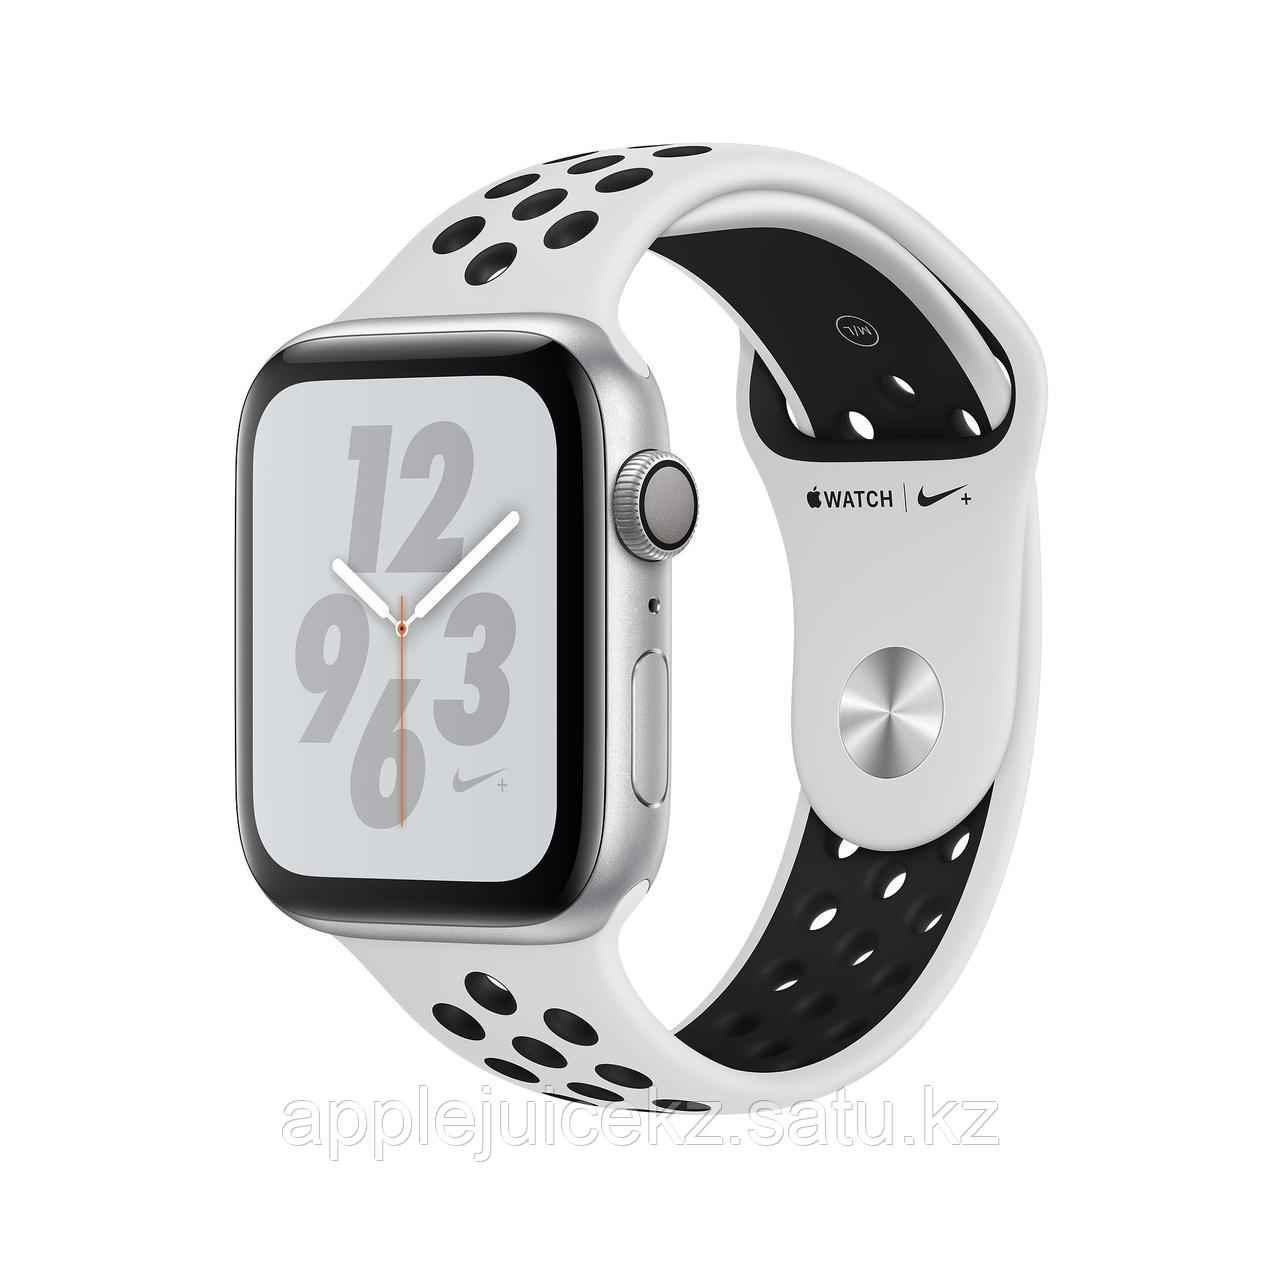 Apple Watch Series 4 40mm Nike+ Silver Aluminum Case with Pure Platinum/Black Nike Sport Band